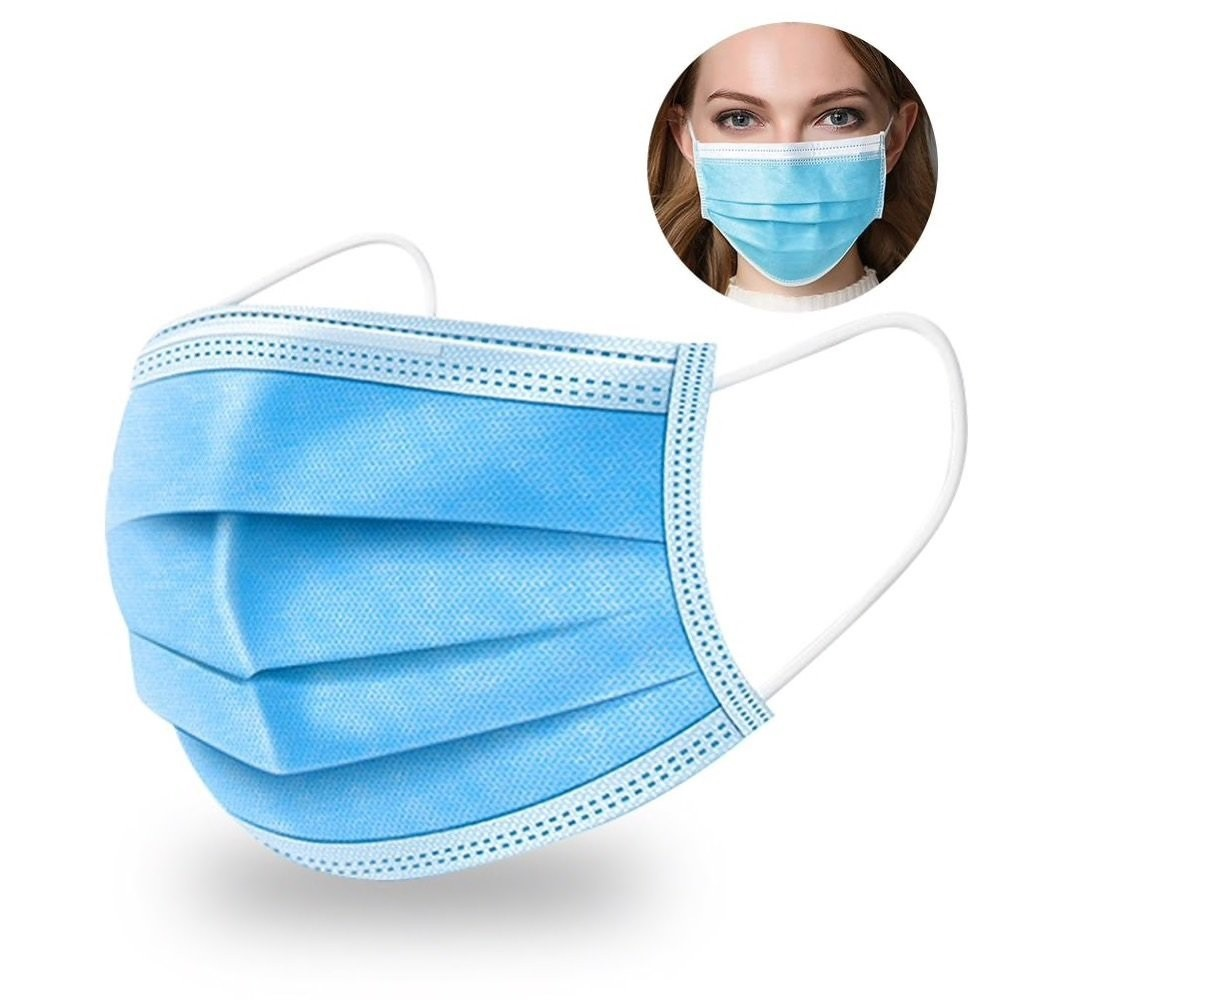 Type IIR 3 Ply Fluid Resistant Masks Pk50. In Stock. 48 Hour Delivery